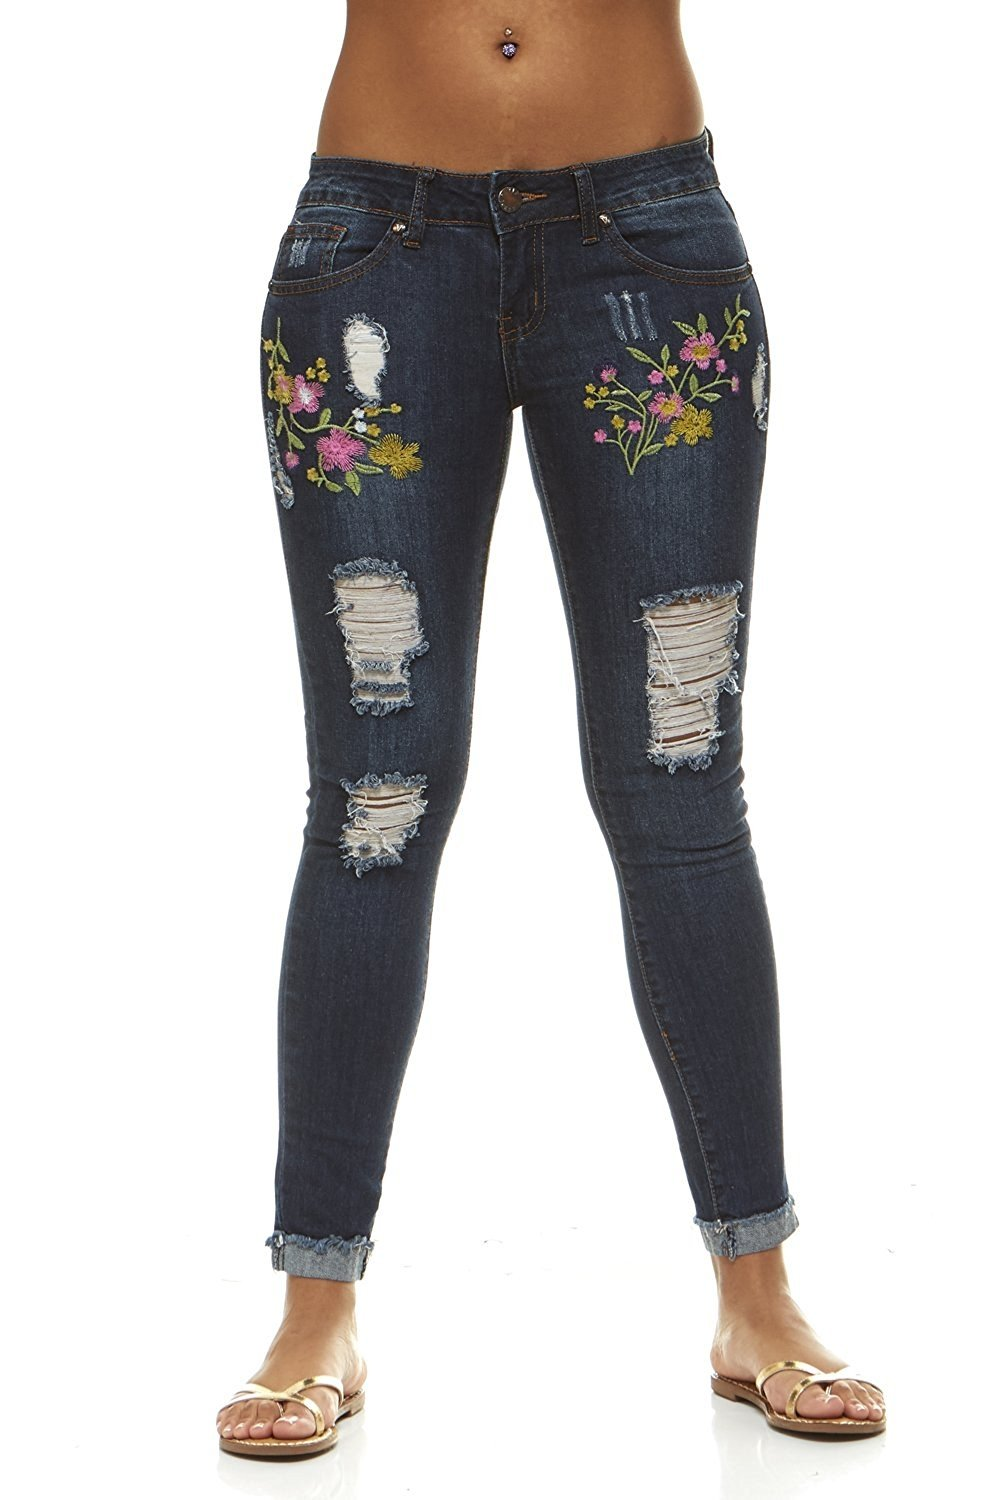 Women's Classic or Ripped Skinny Jeans With Floral or Studs In Light and Dark Washes